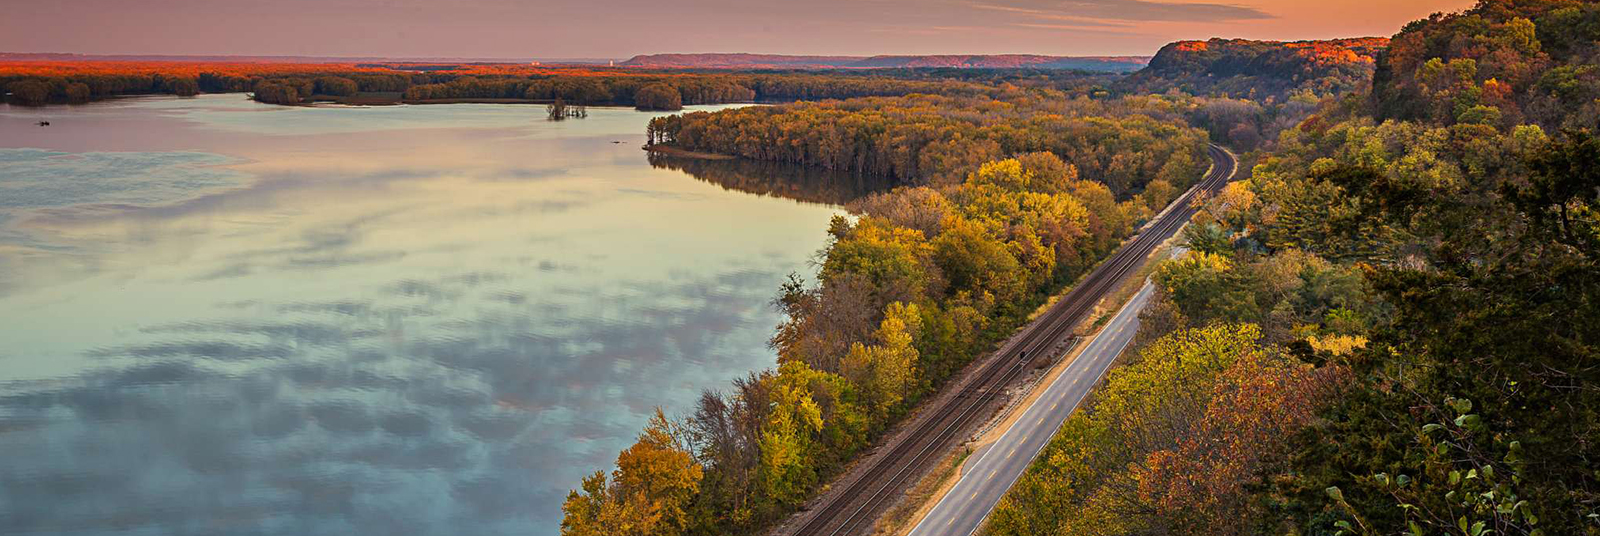 Great River Road IMG